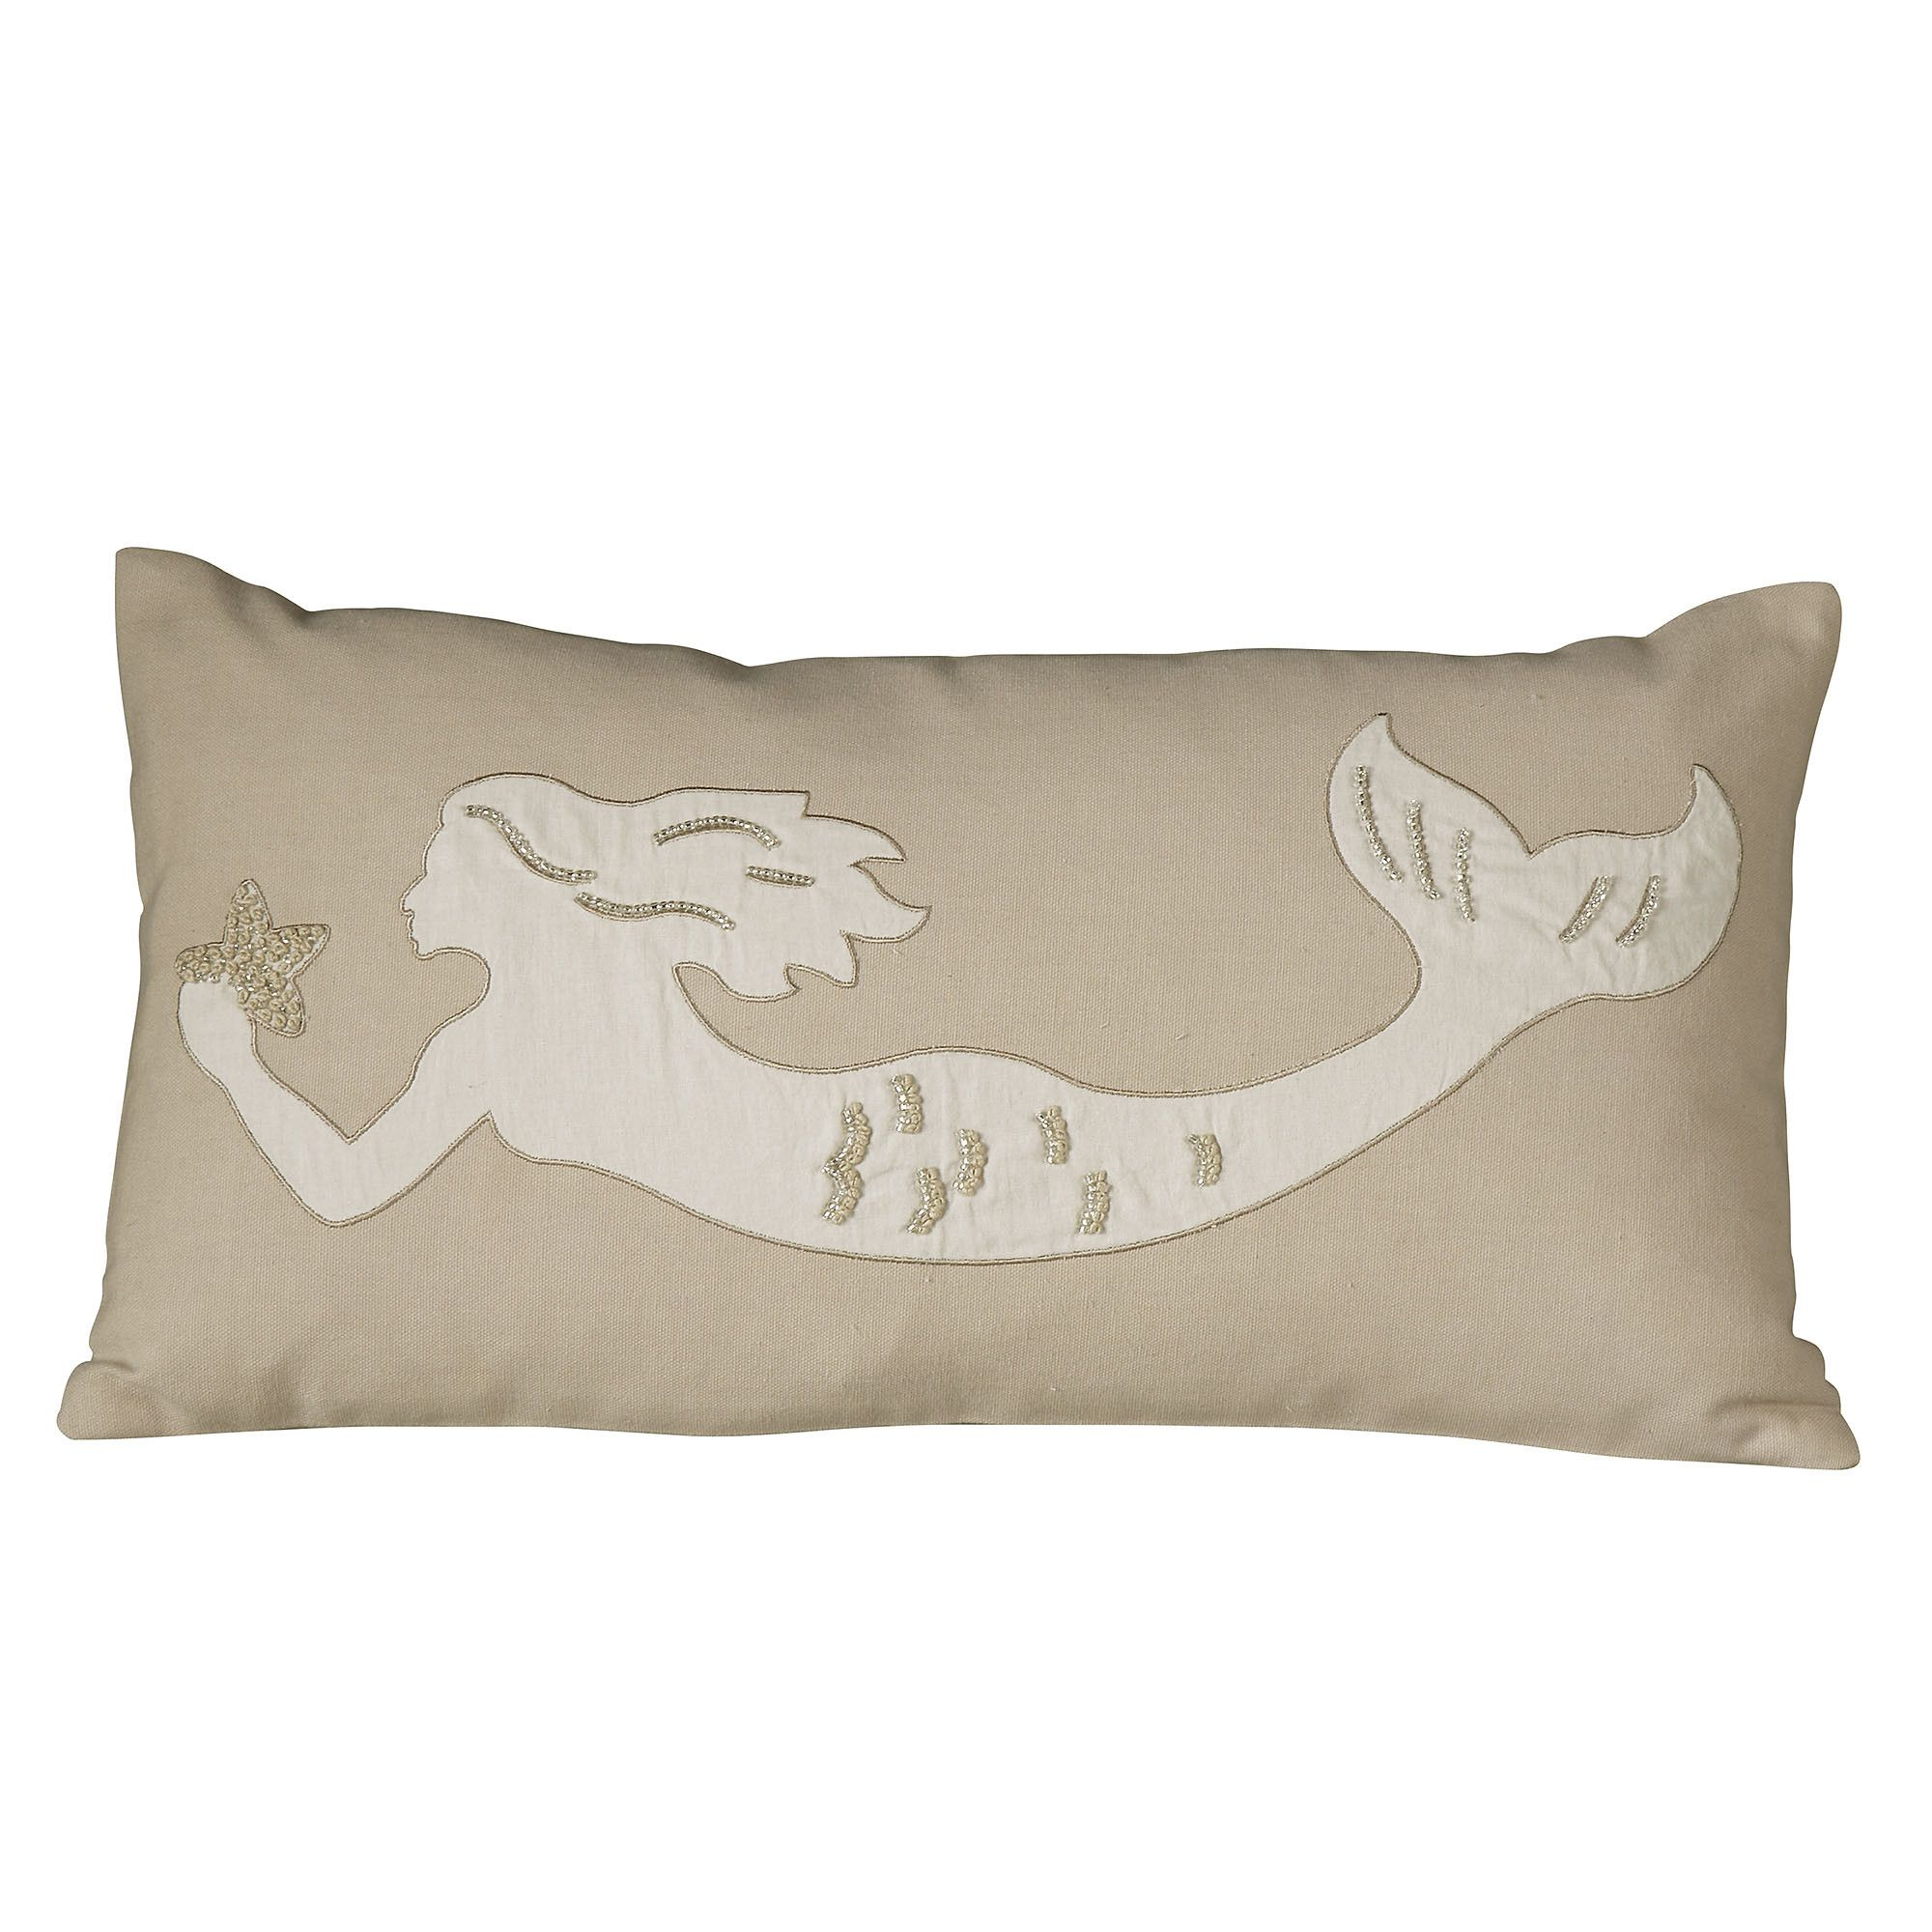 Marina Pillow Cover Collection Embellished Pillows Pillows Mermaid Home Decor